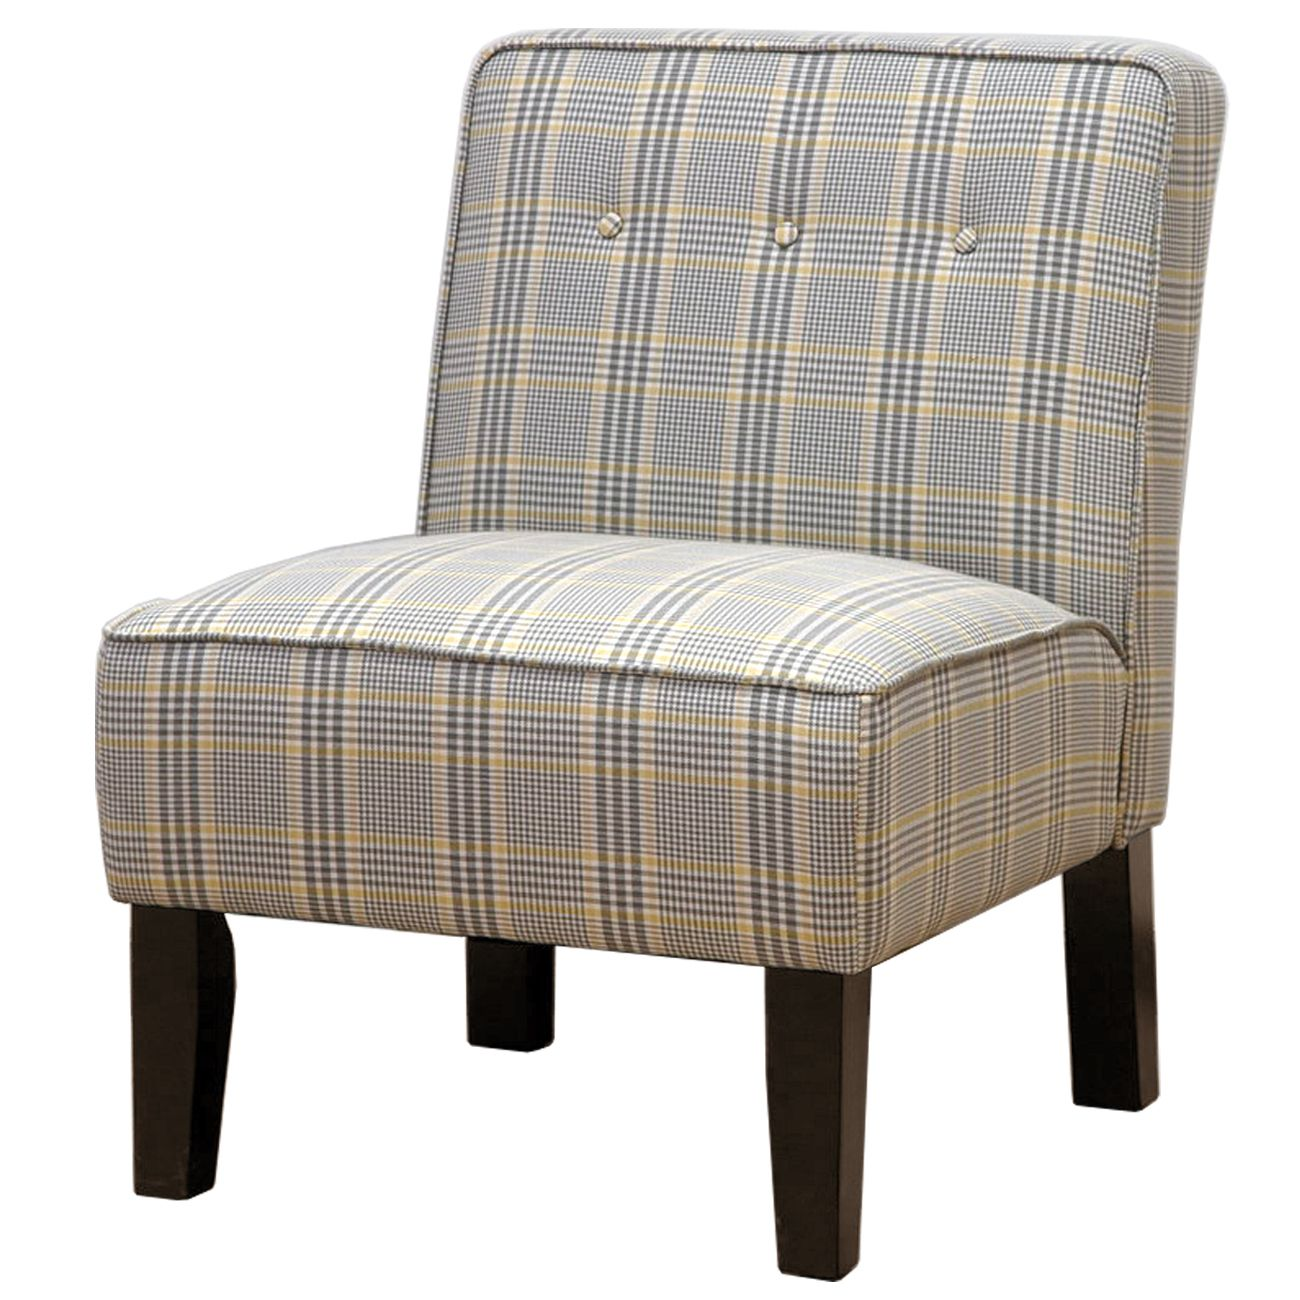 Plaid ButtonTufted Accent Chair Plaid Solid wood and Furniture